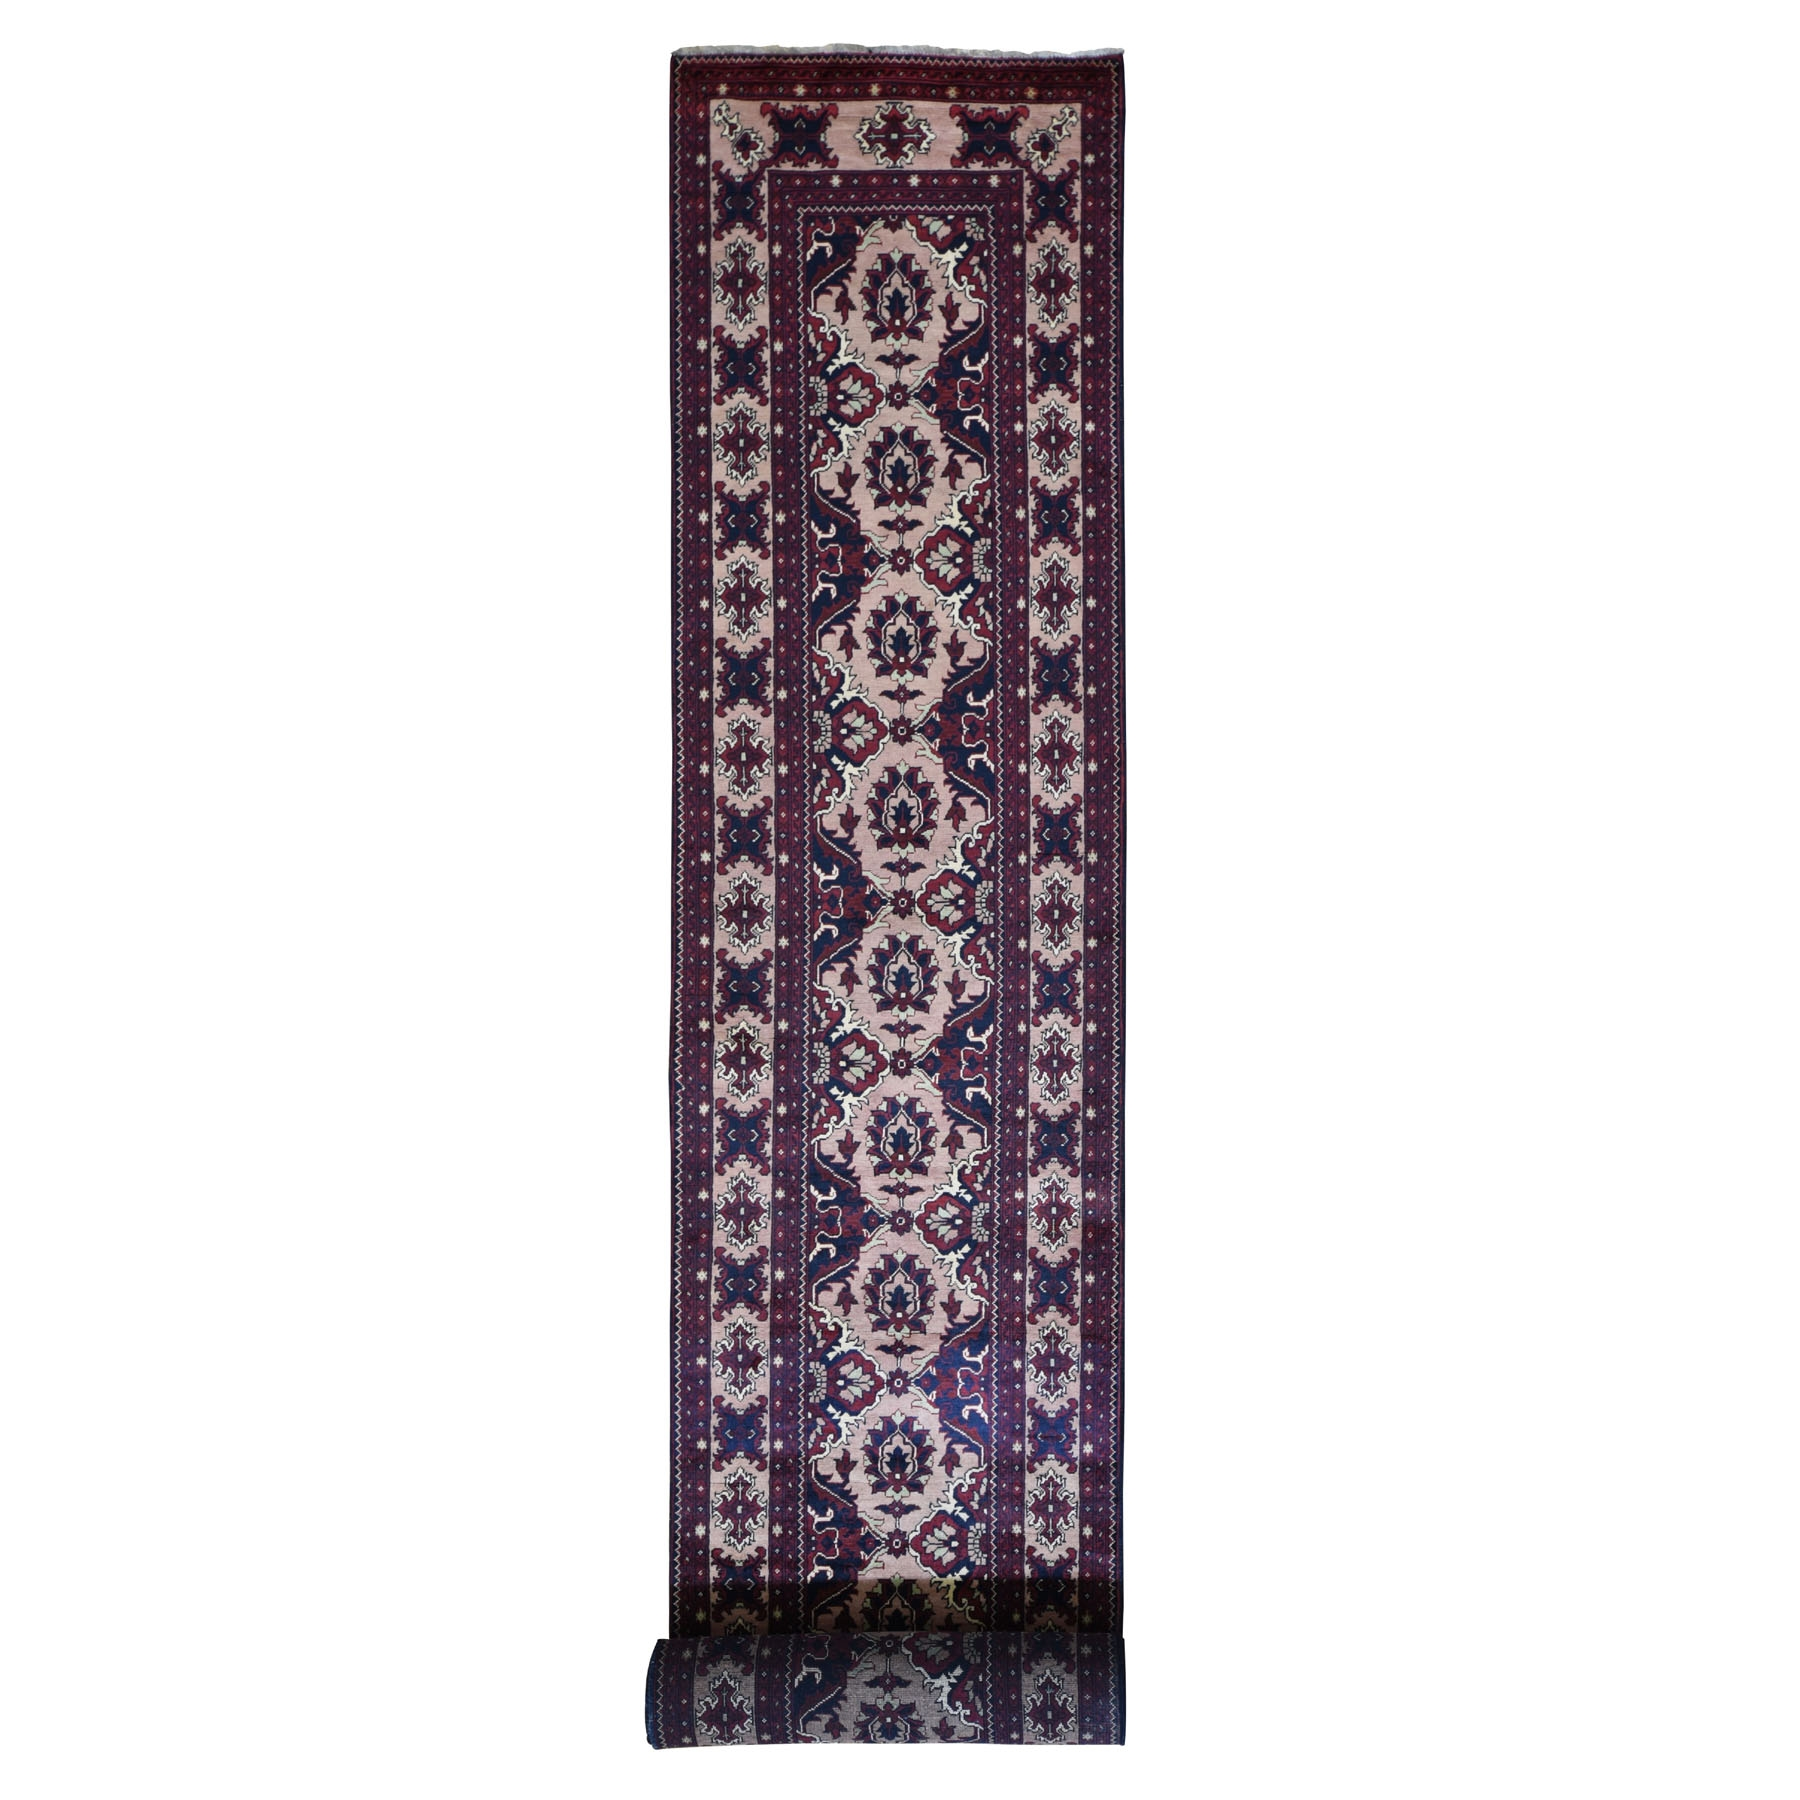 Nomadic And Village Collection Hand Knotted Red Rug No: 199218